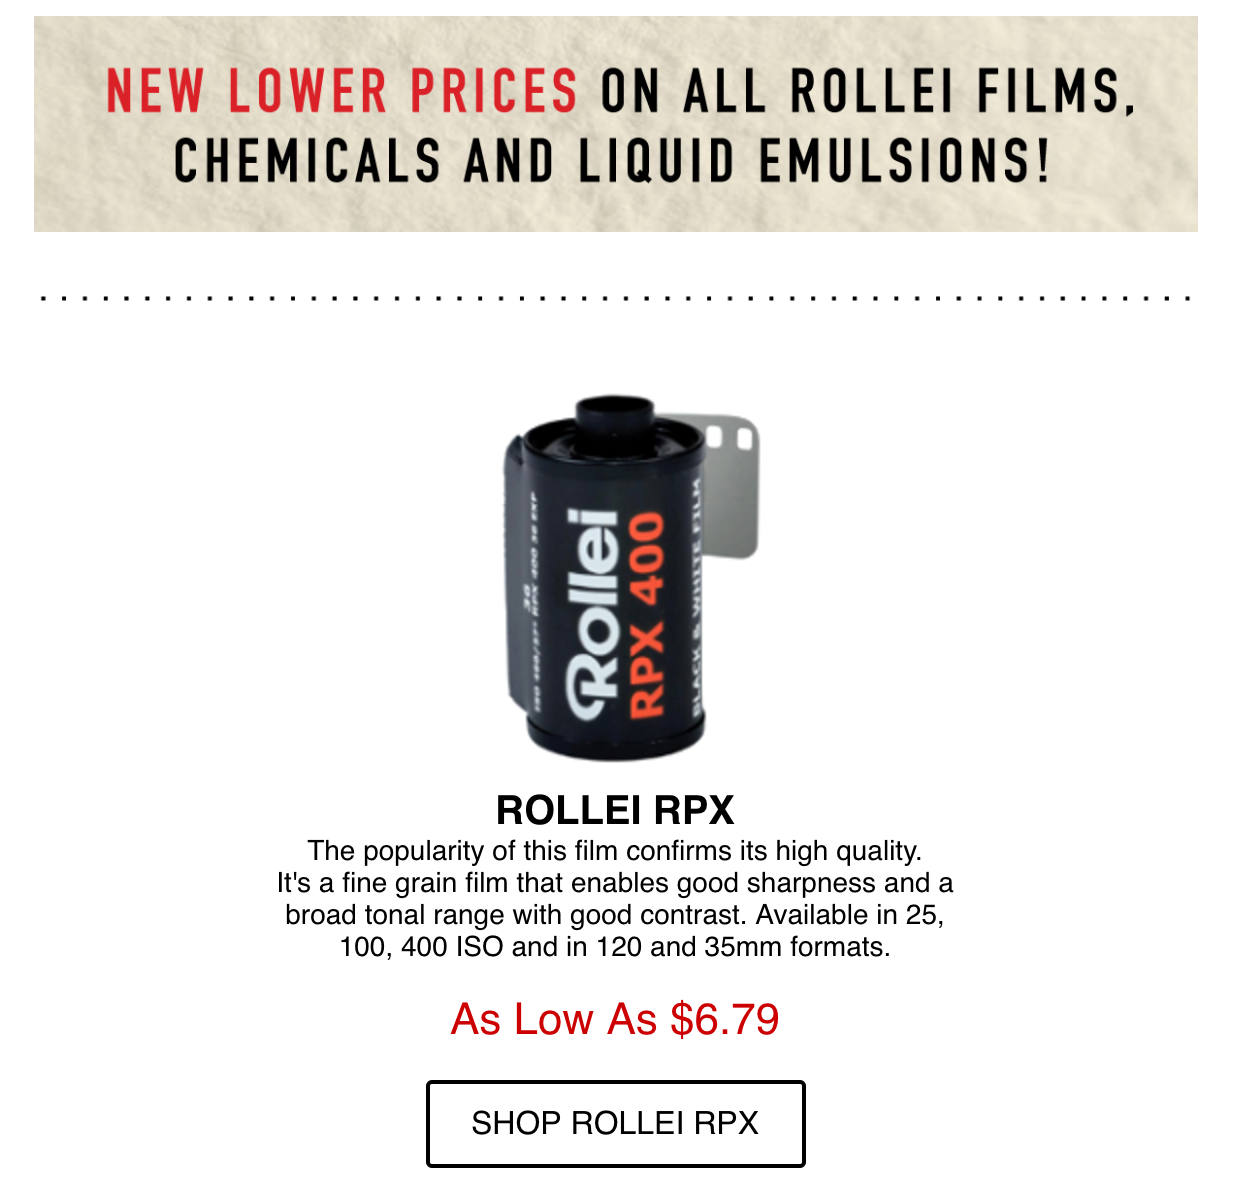 Freestyle Photographic Dropped Their Prices on Rollei Film and Developer